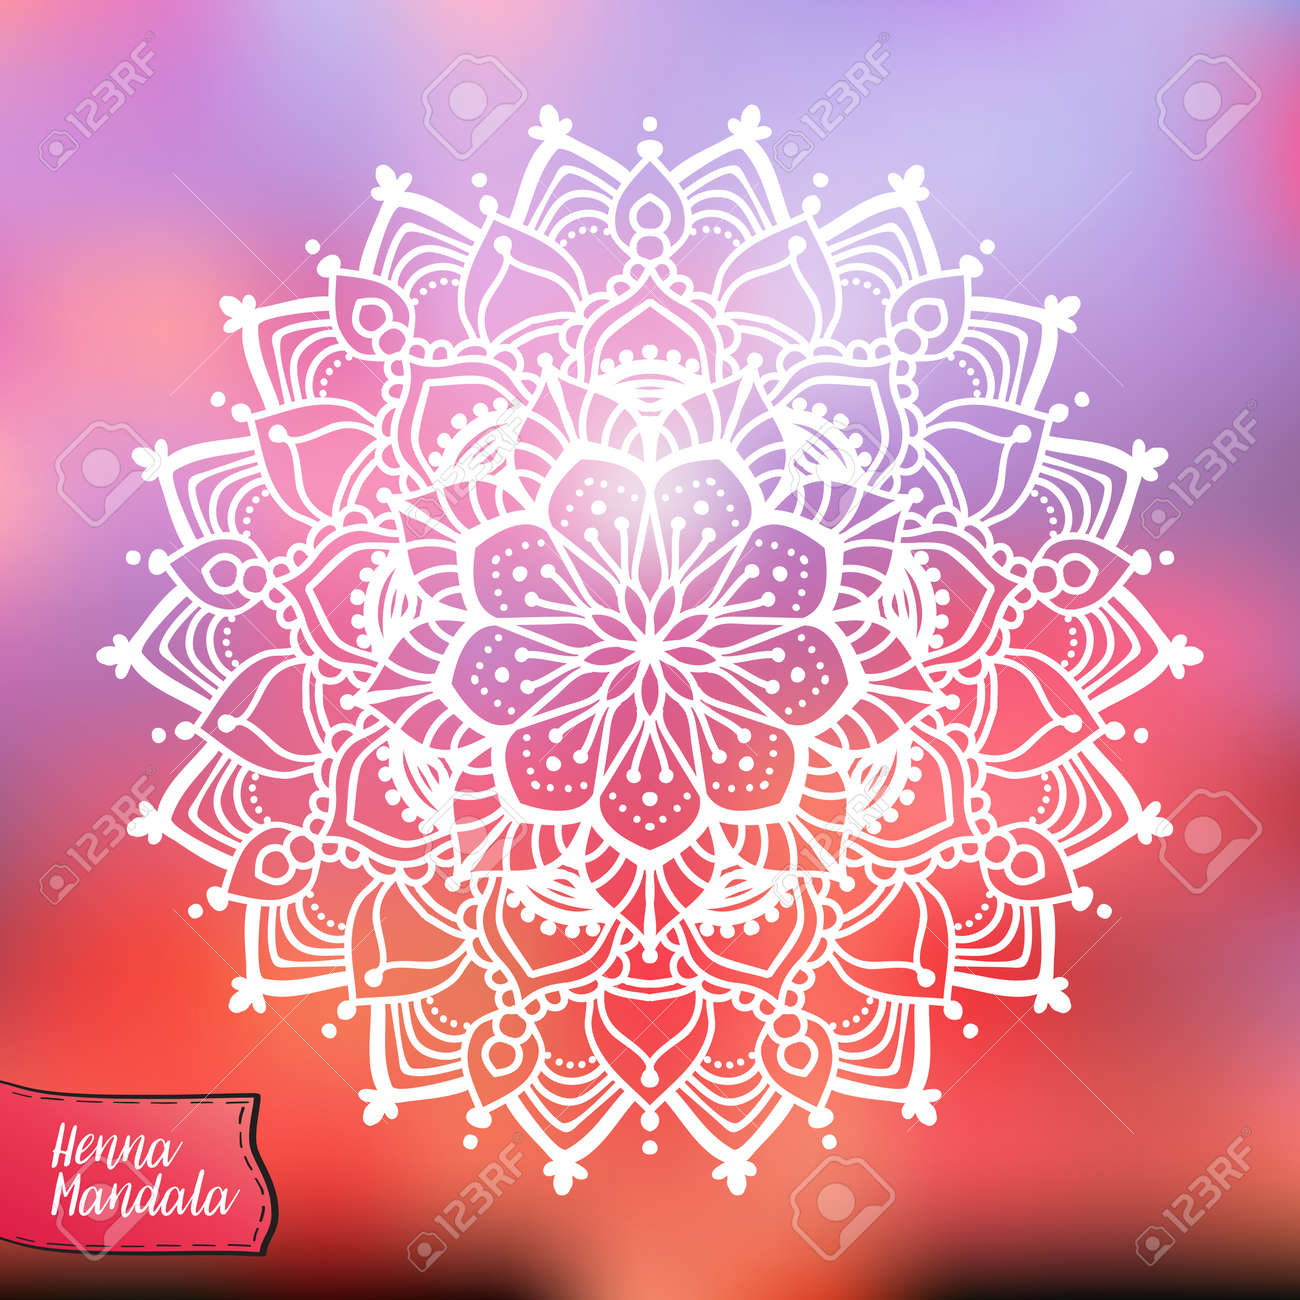 3cac111ebc93d Decorative indian henna mandala. This illustration can be used as a print  on T-